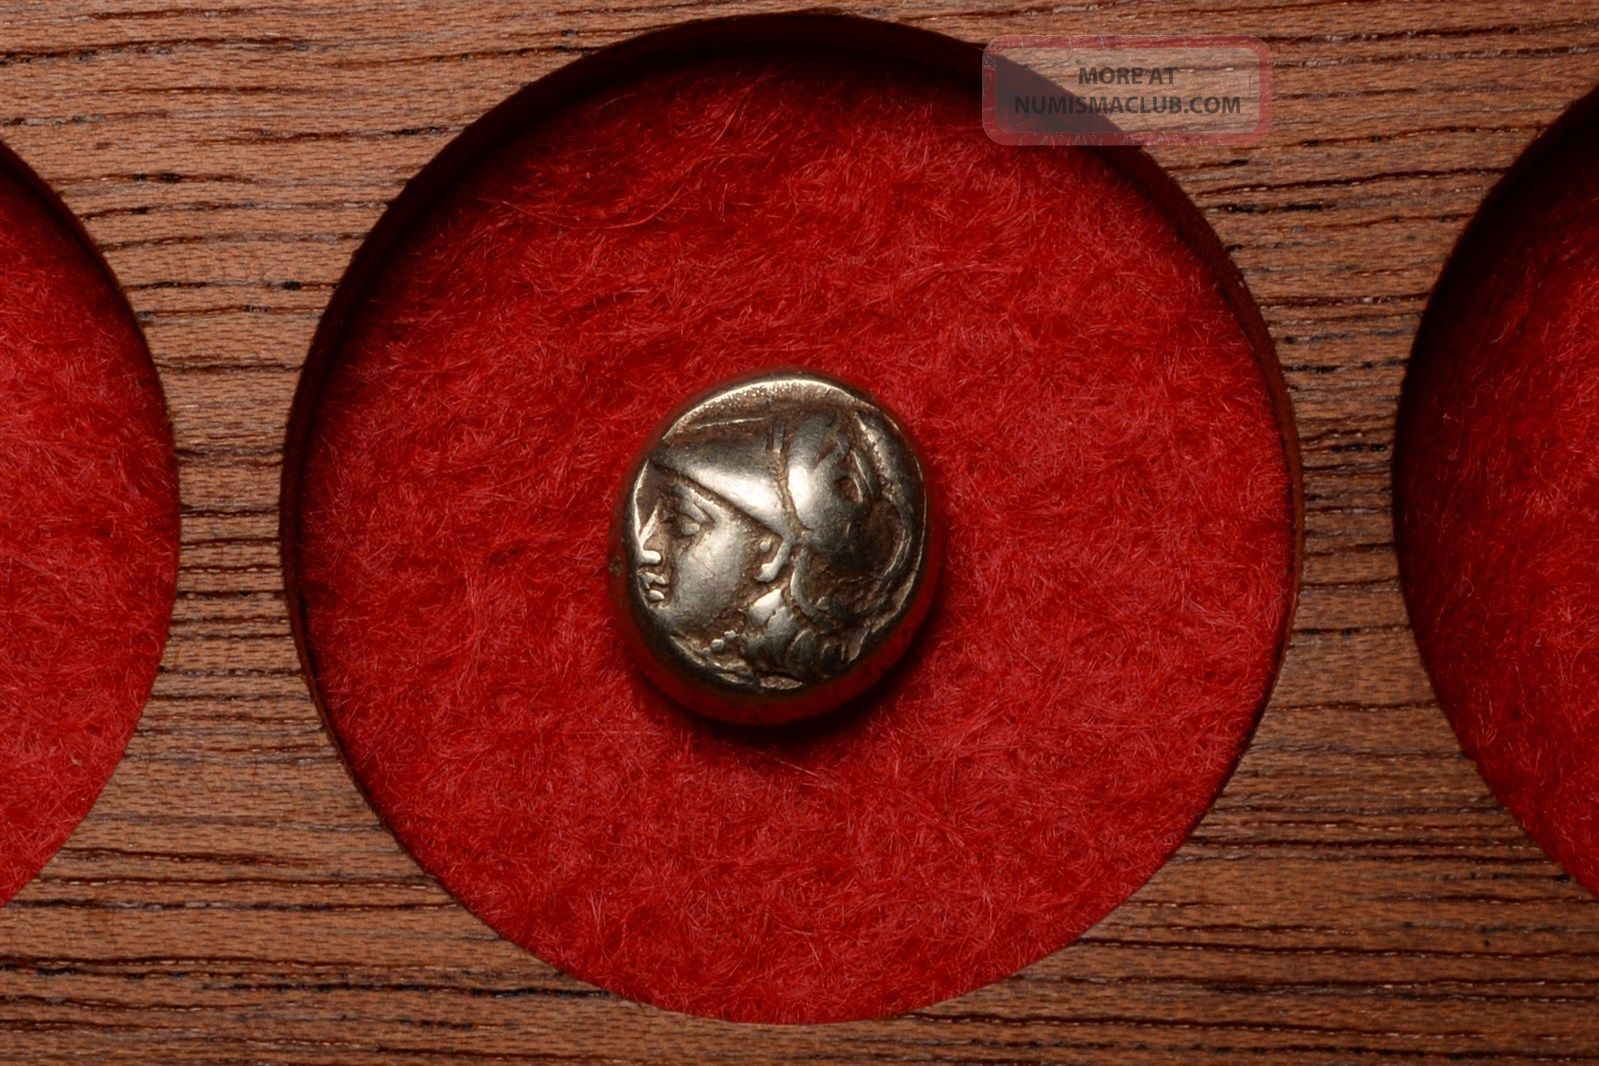 Ancient Greek Electrum Gold Hekte Coin From Mytilene Lesbos - 412 Bc Coins: Ancient photo